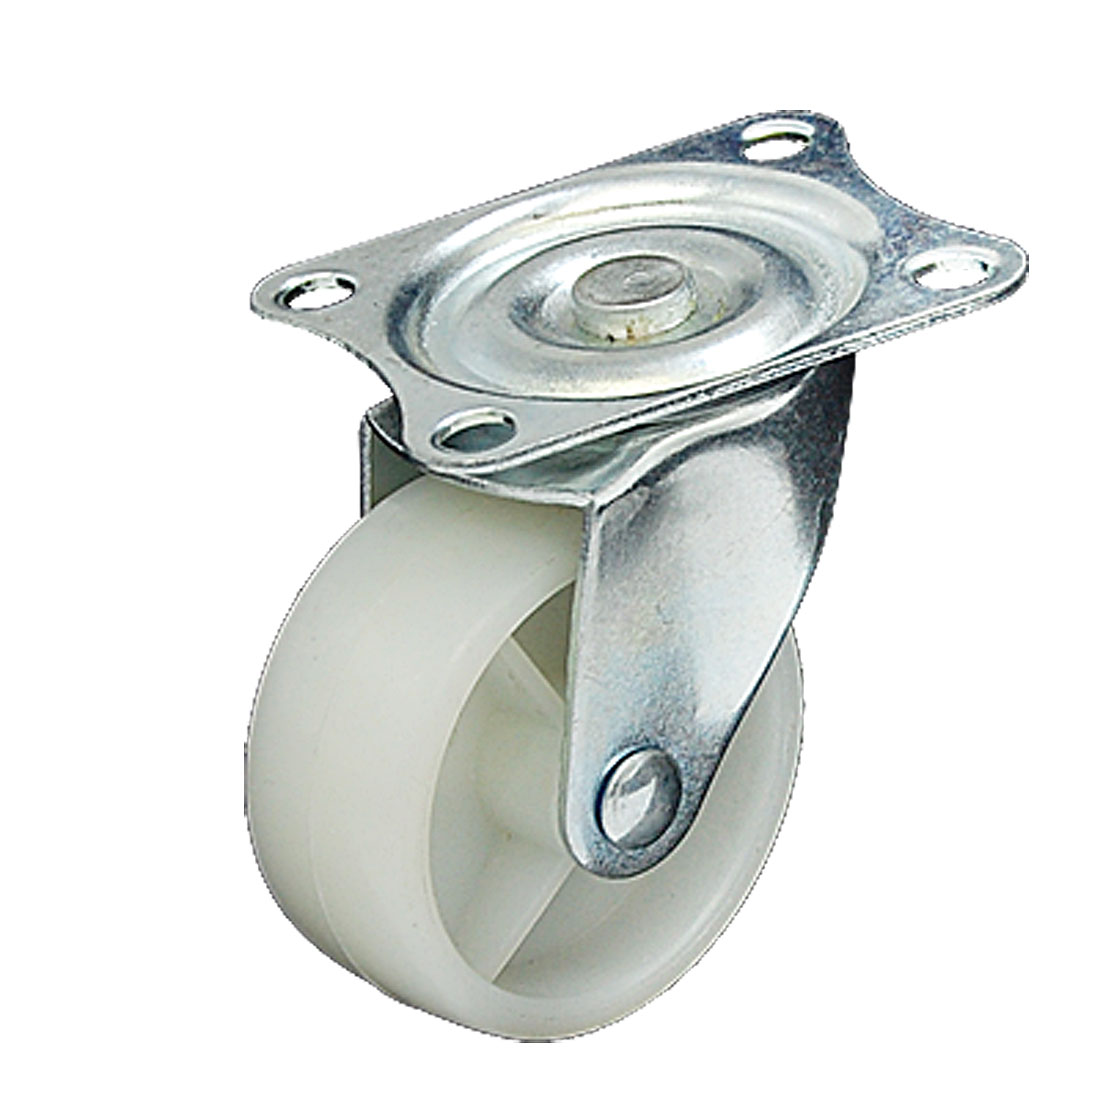 Flat Full Rotation Caster Wheel with Swivel Plate